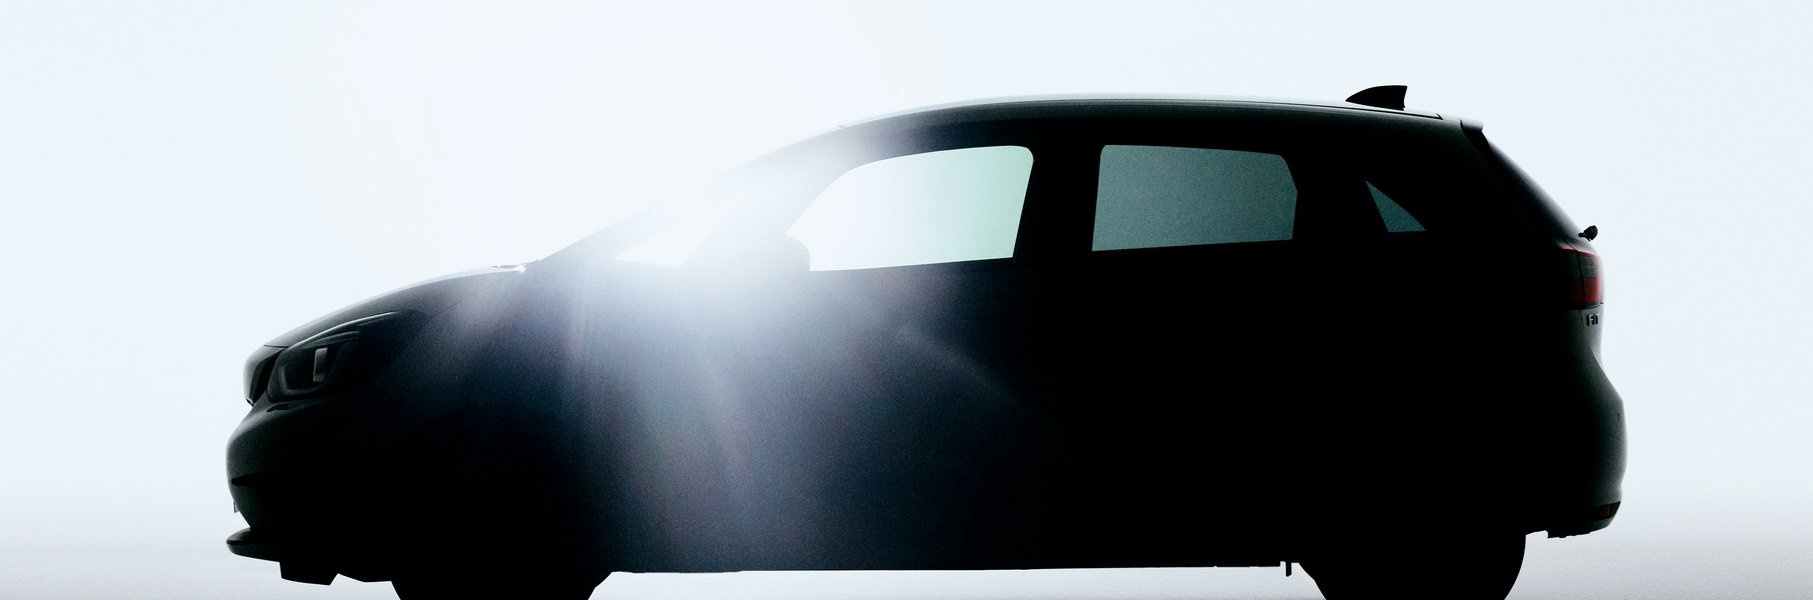 honda-jazz-fit-teaser.jpg